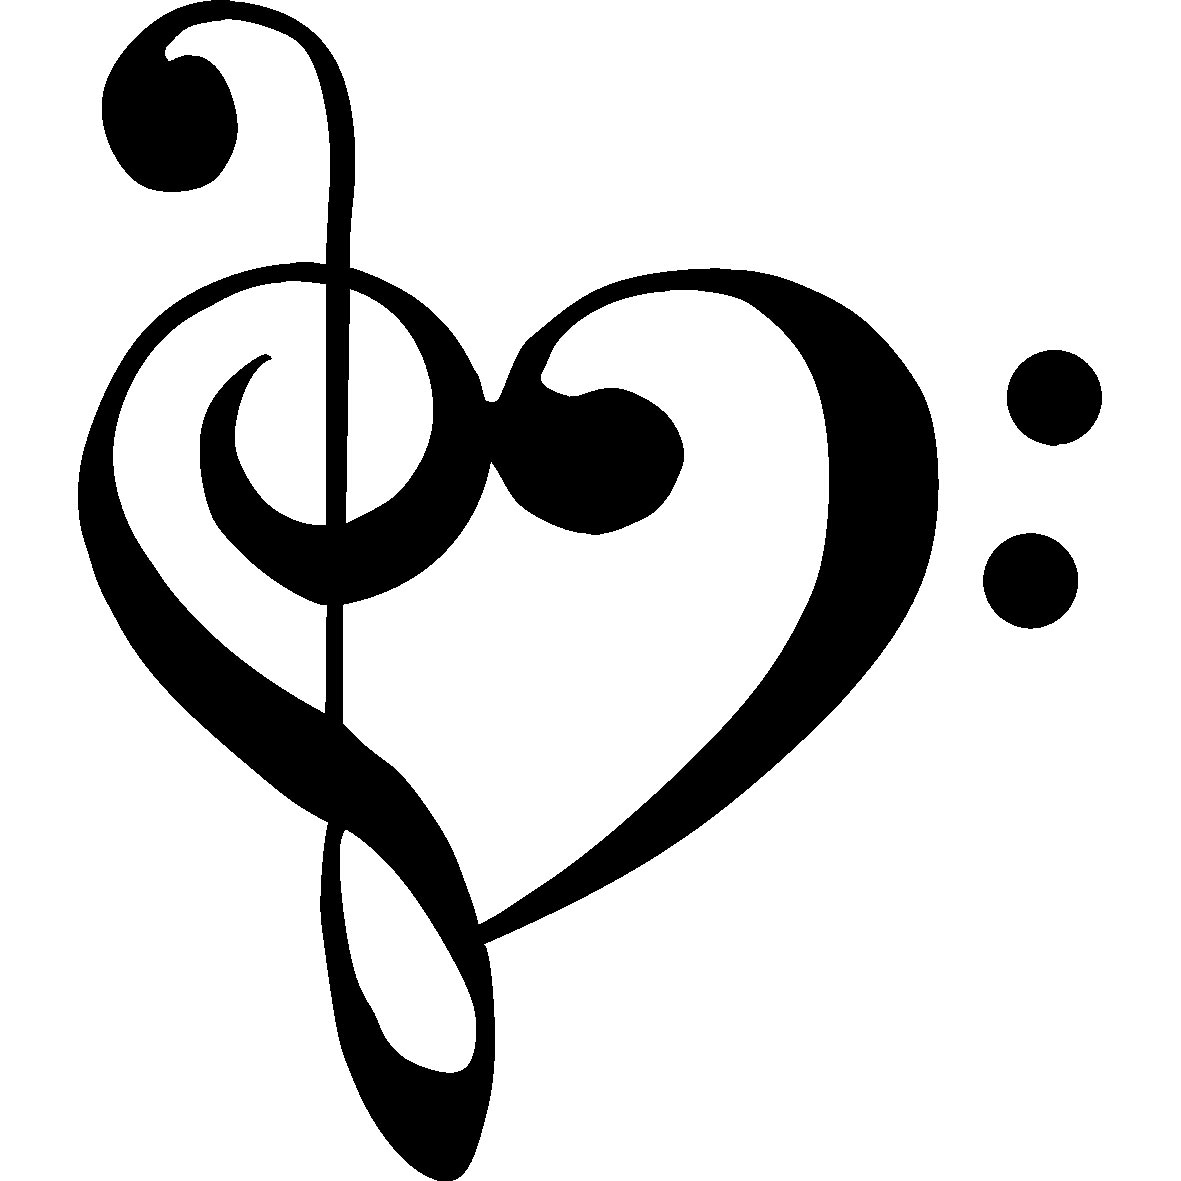 Musical Group Heart Group of Music Has Always